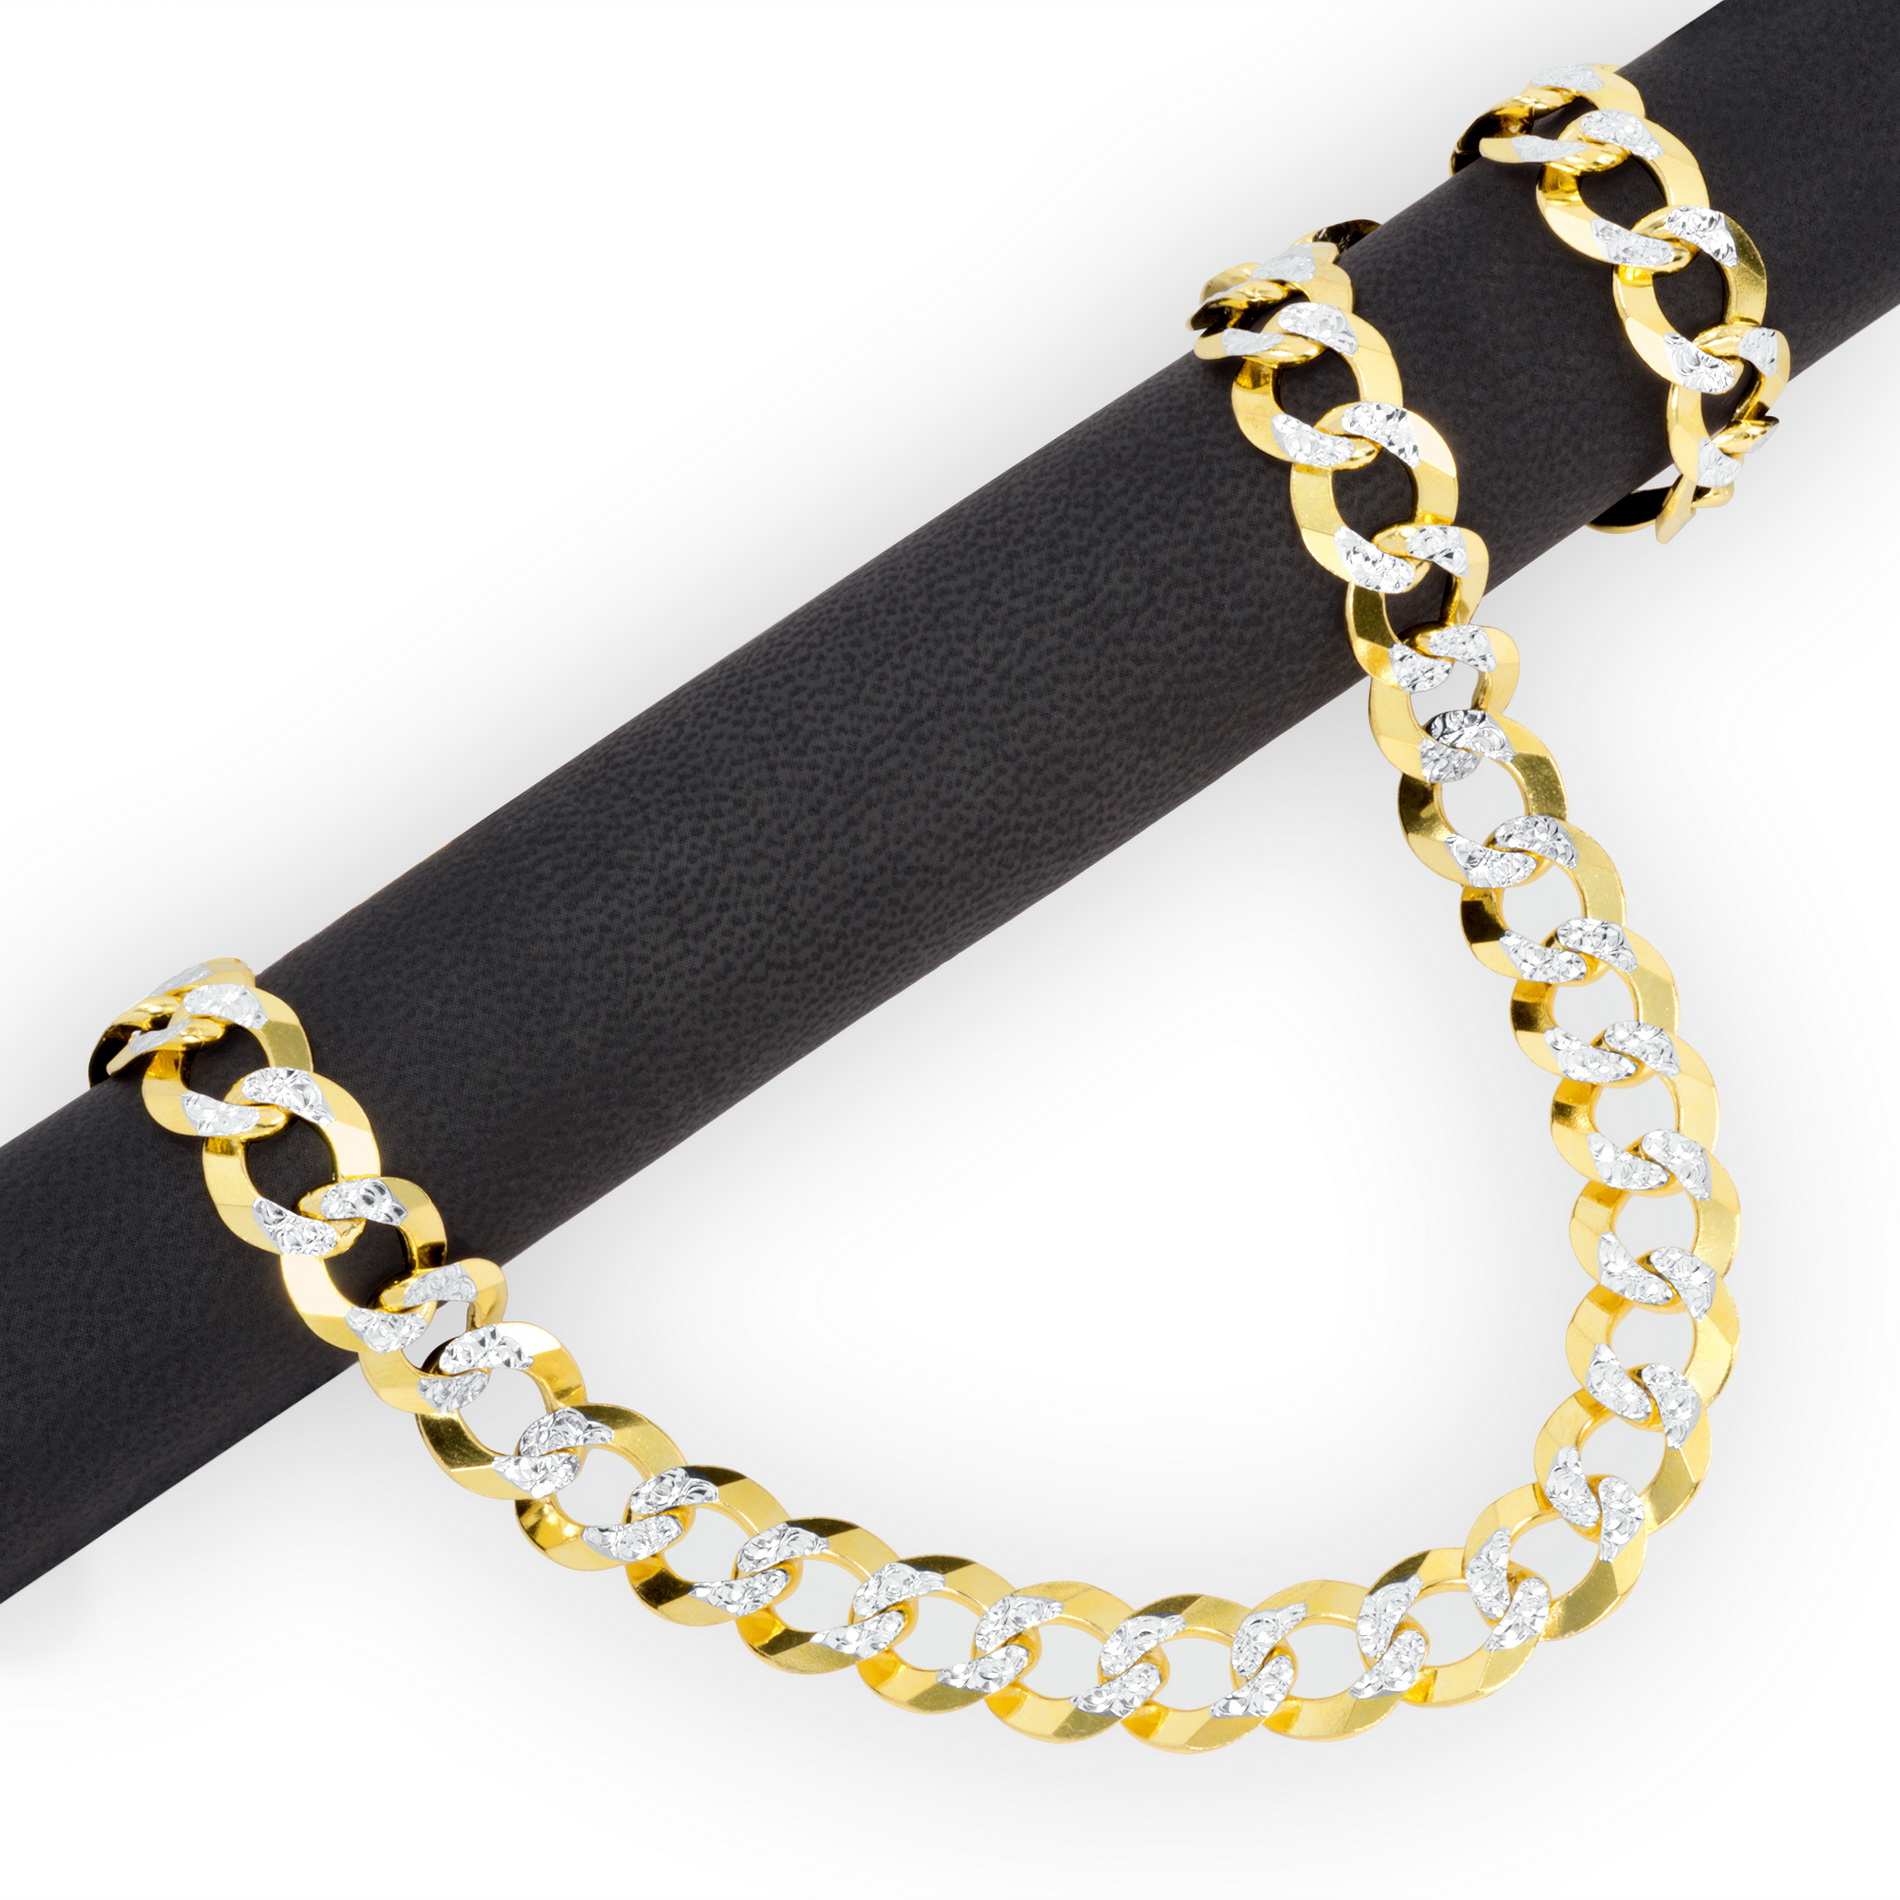 10k-Yellow-Gold-Solid-11-5mm-Diamond-Cut-Pave-Cuban-Curb-Chain-Necklace-22-034-30-034 thumbnail 18